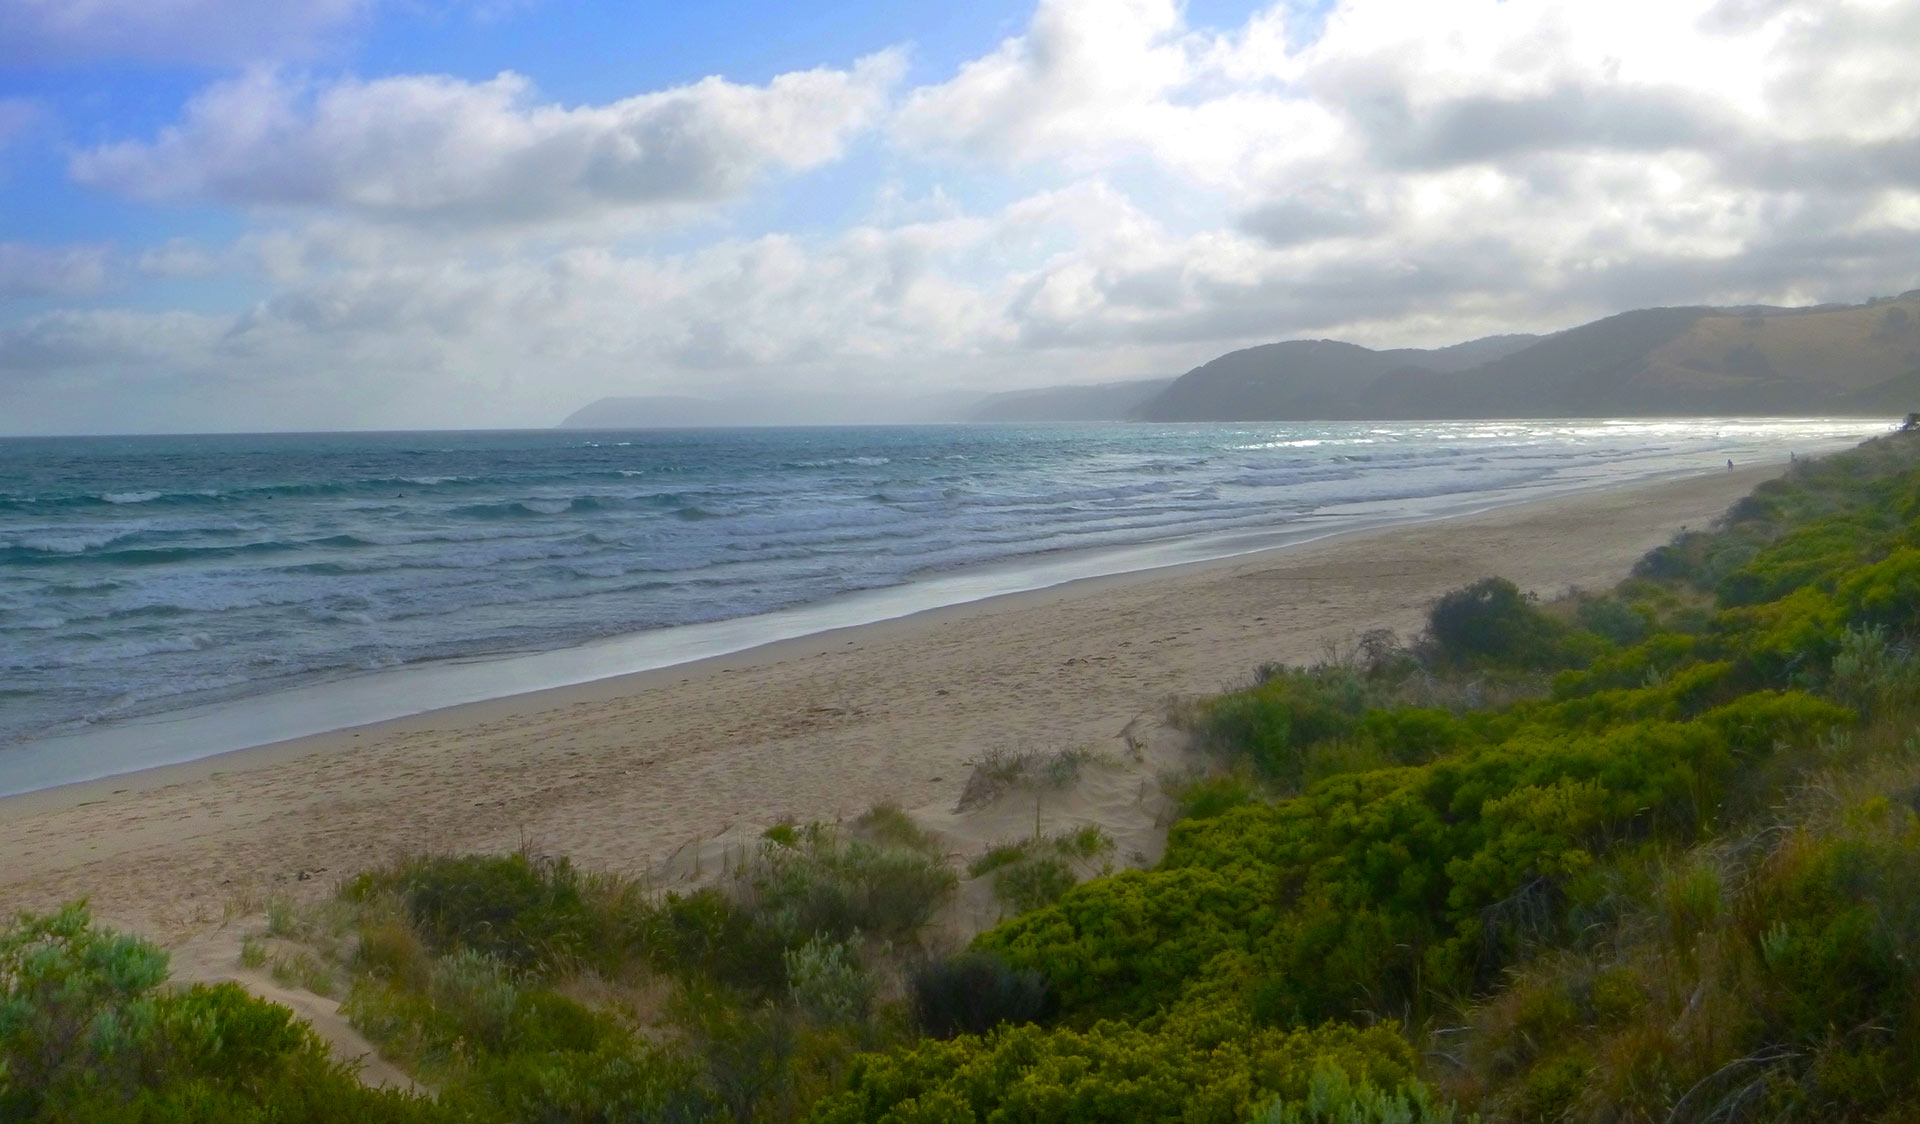 A view of the beach from the lookout on Moggs Creek Circuit Track.